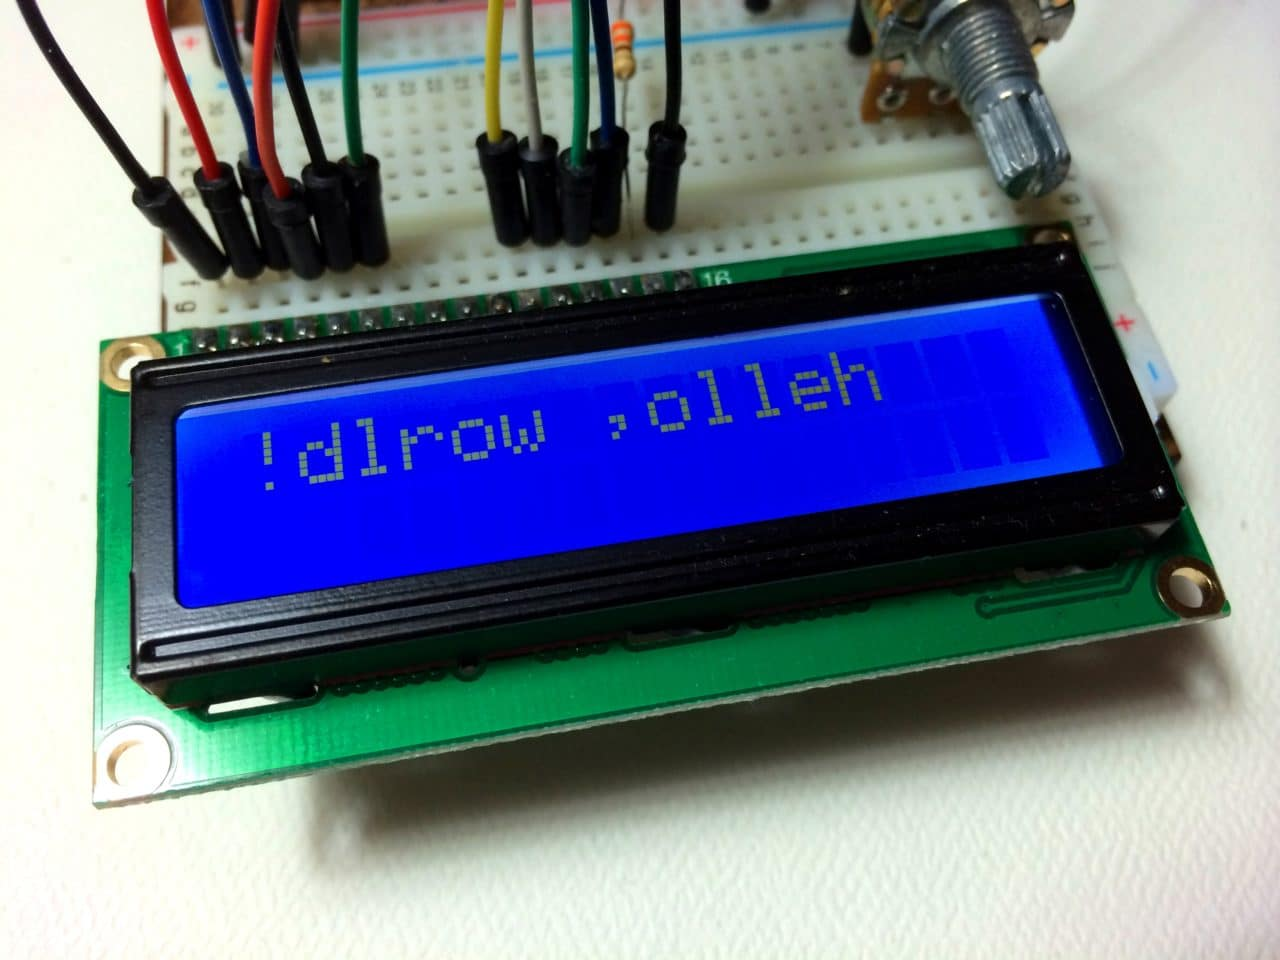 Arduino Lcd Set Up And Programming Guide Circuits Gt Making A Homemade Power Amplifier Pcb Layout Included